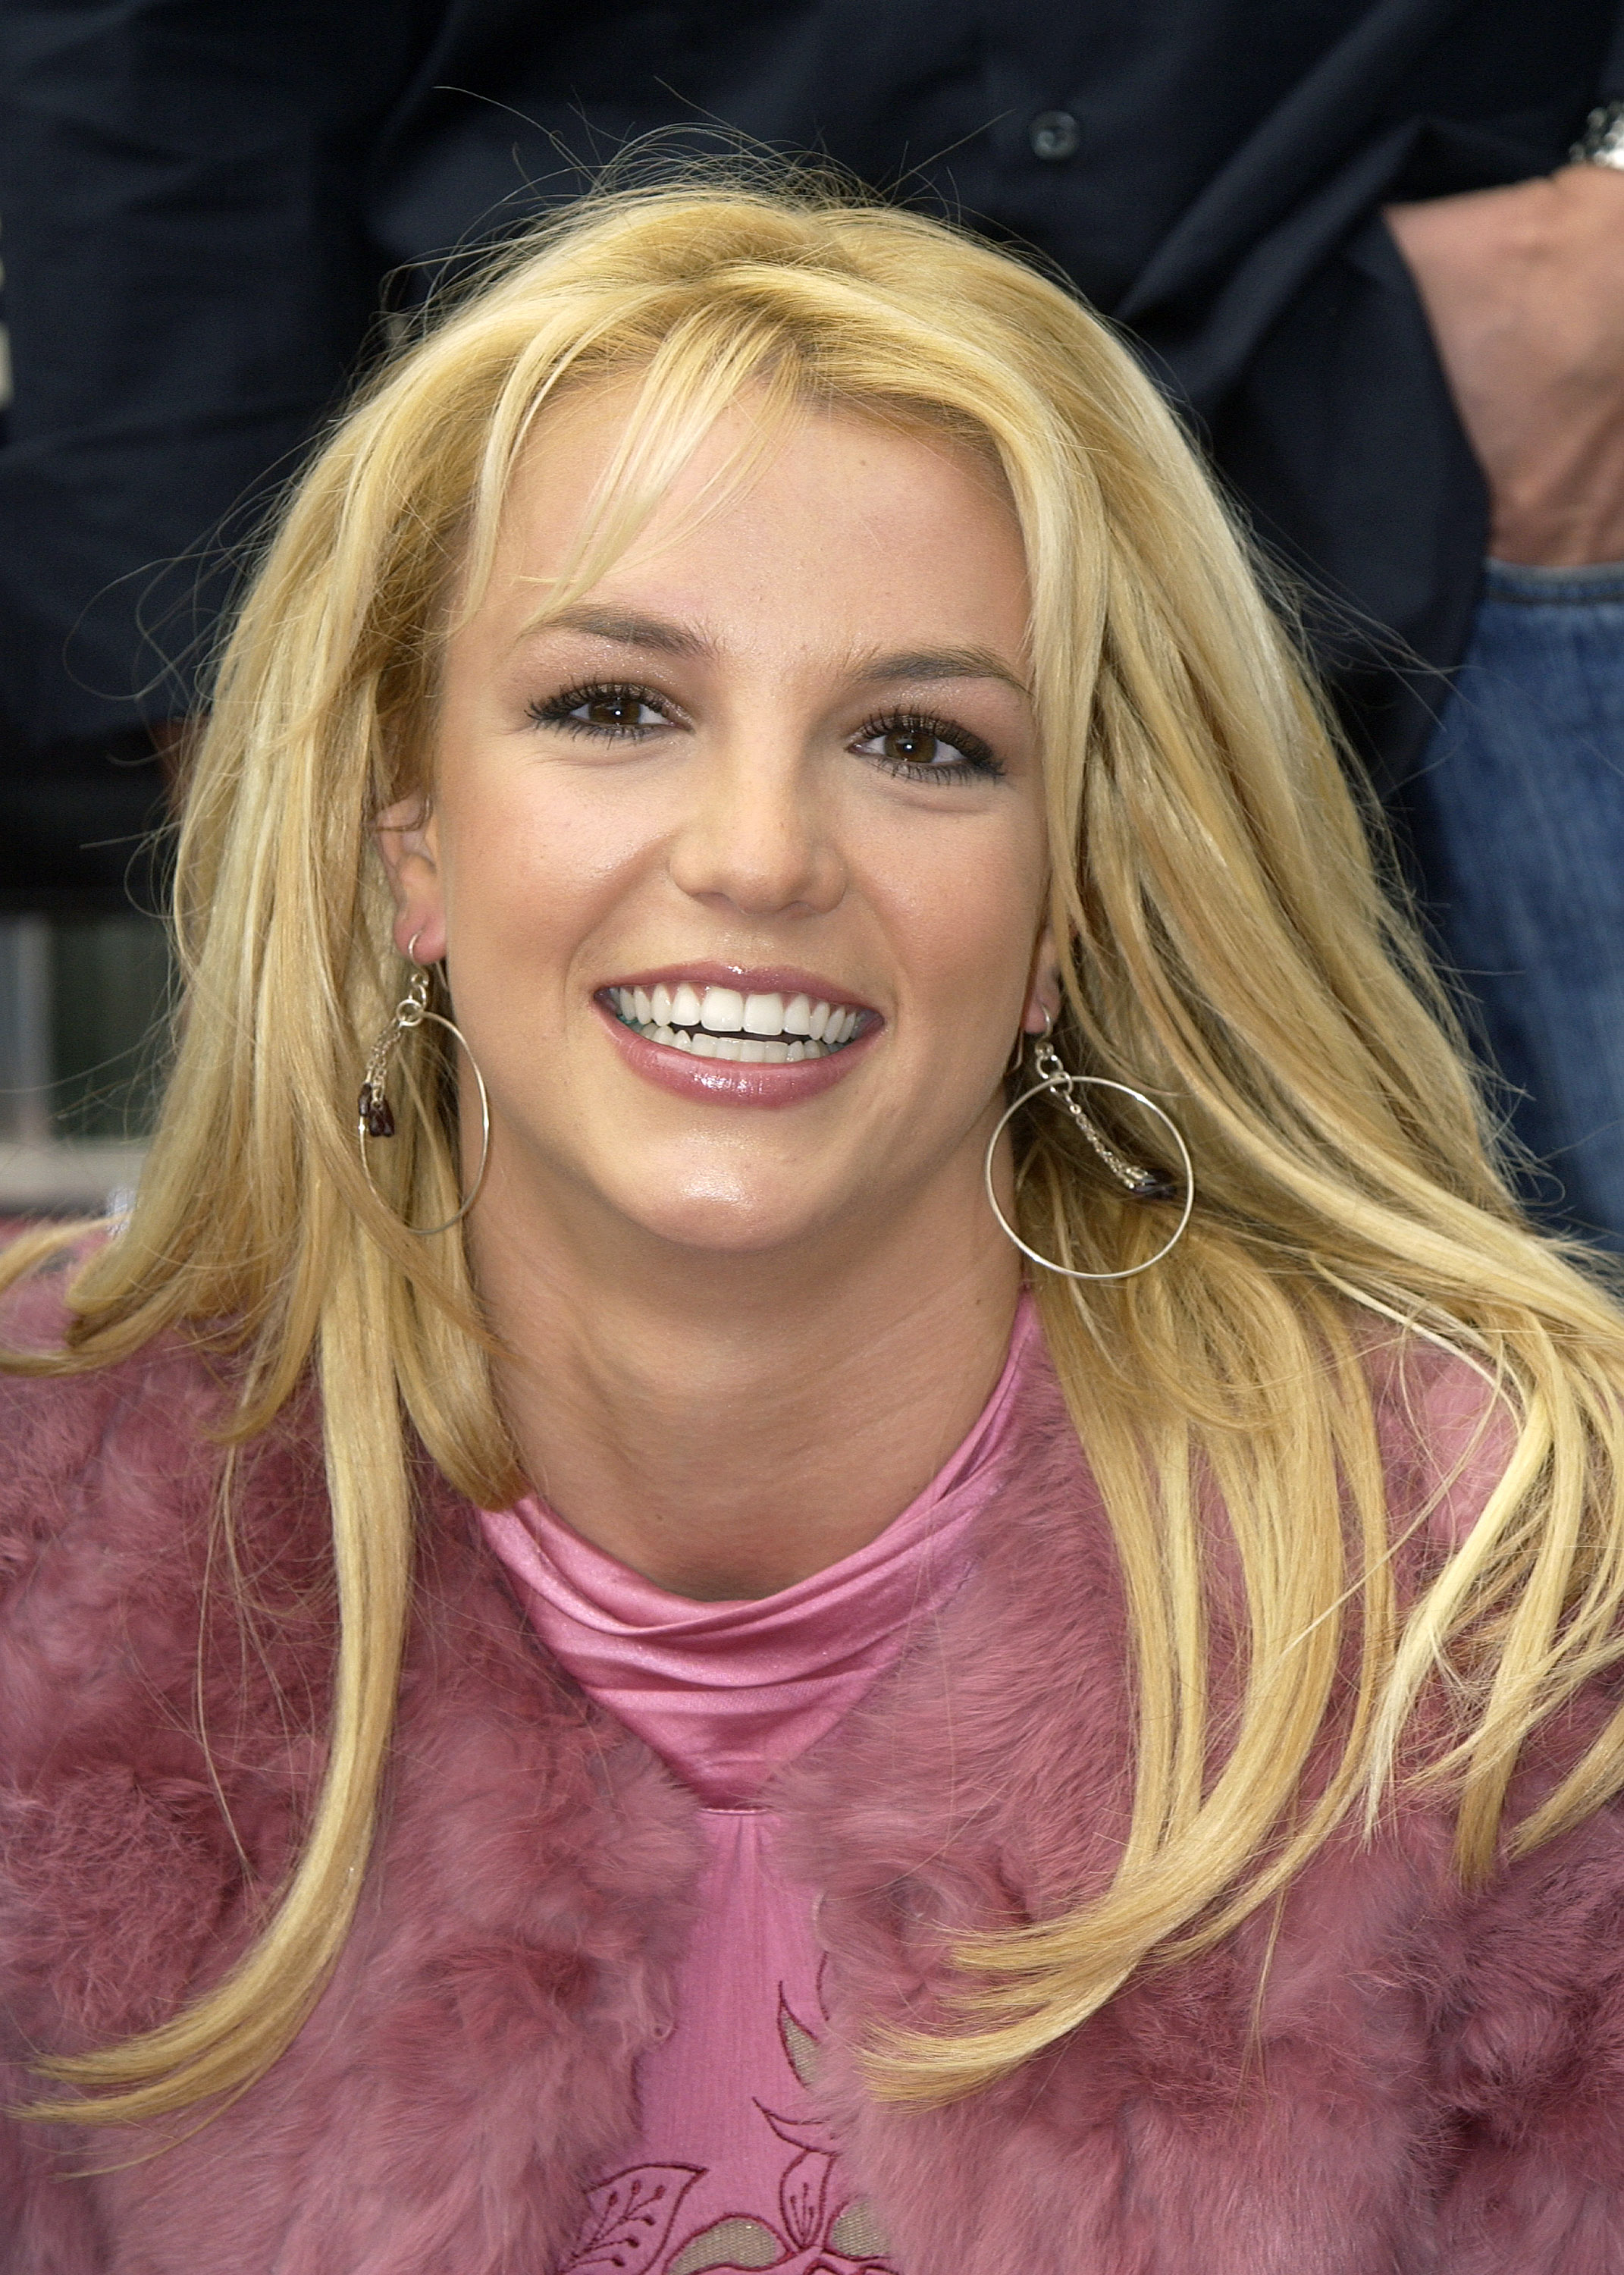 20 Britney Spears Eye Makeup Looks That Are Completely